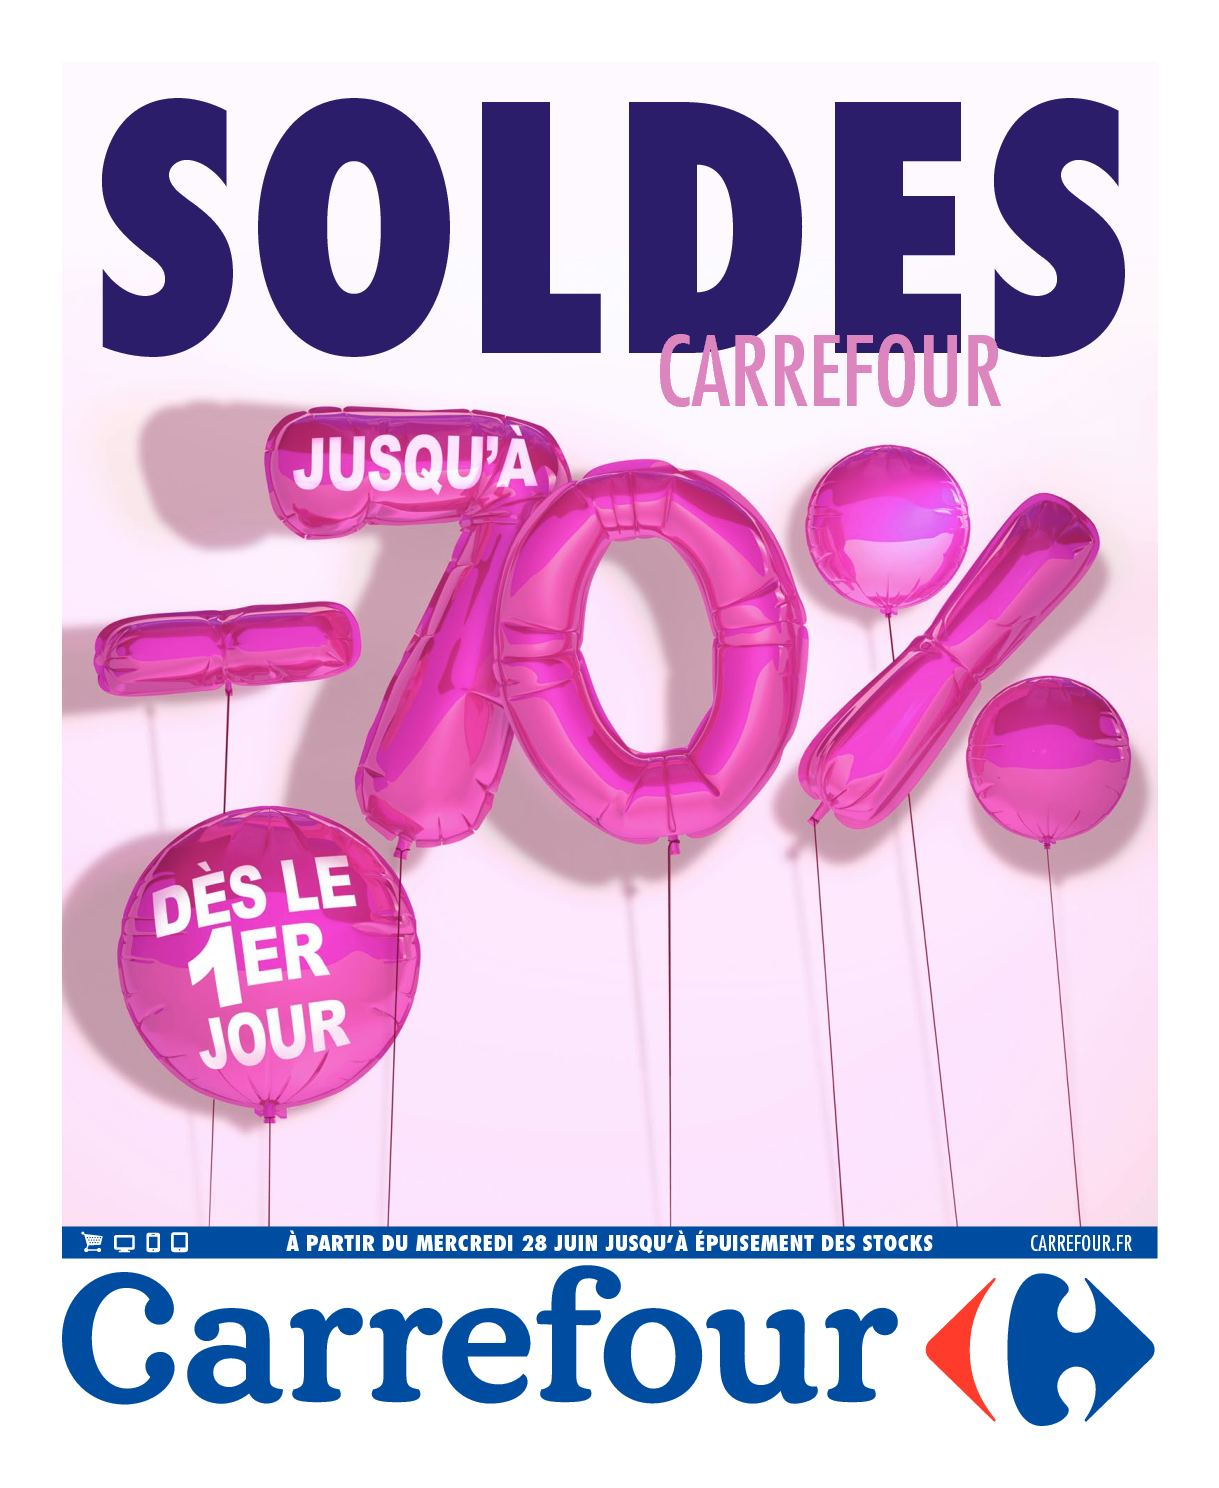 Calam o soldes carrefour - Soldes nice 2017 ...